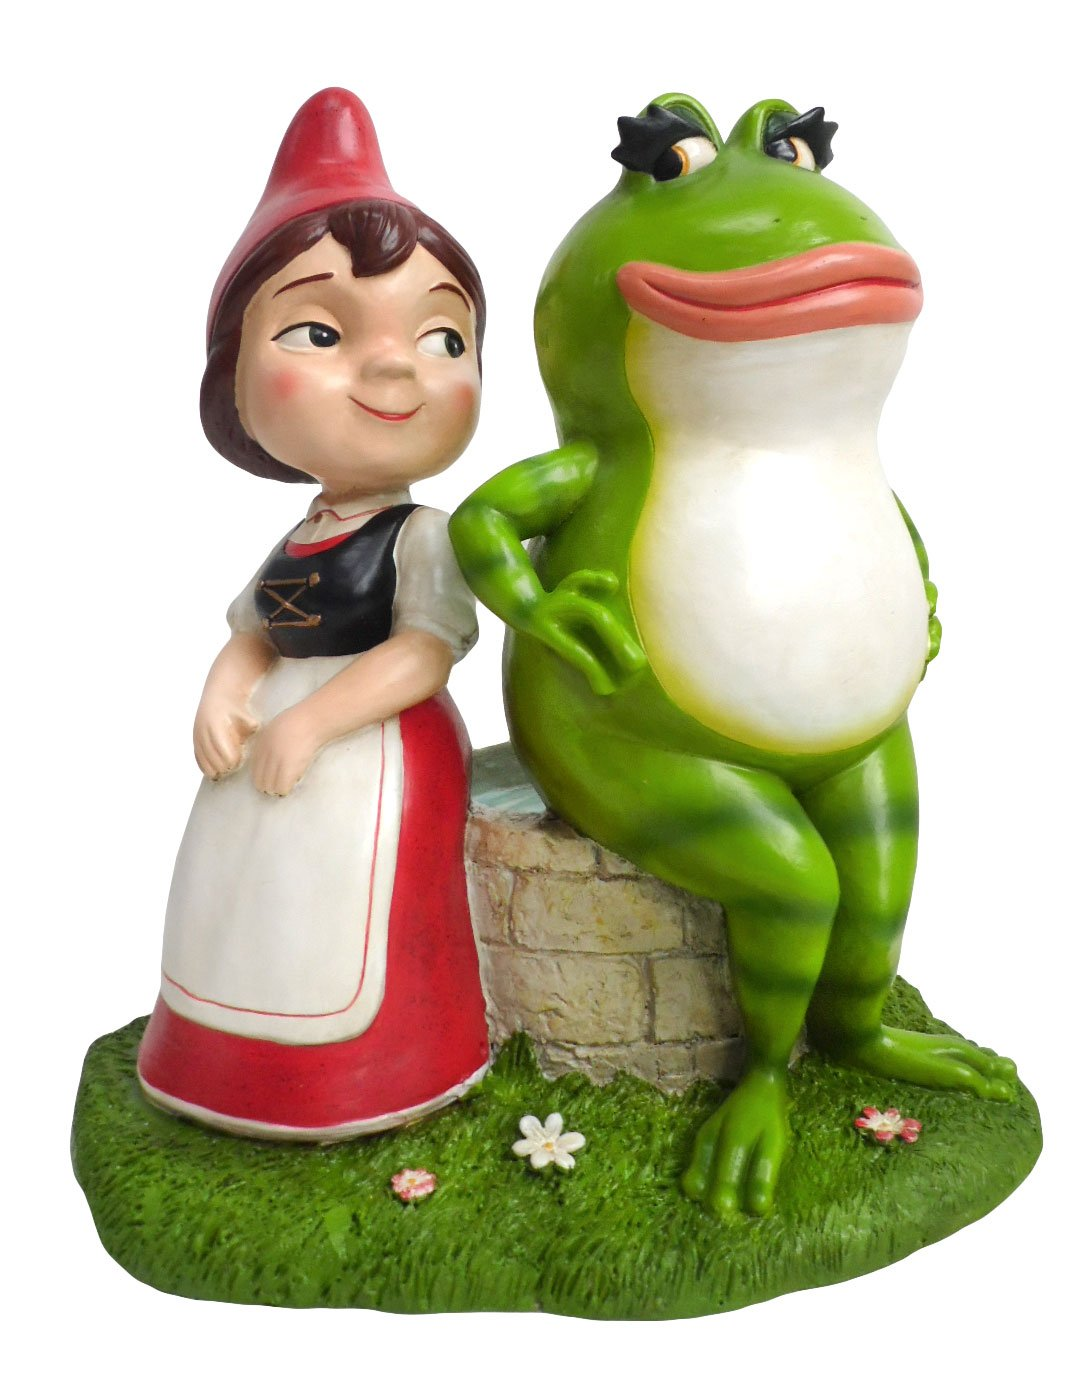 Female Gnome: Female Garden Gnomes (Lady Garden Gnomes You Will Want To